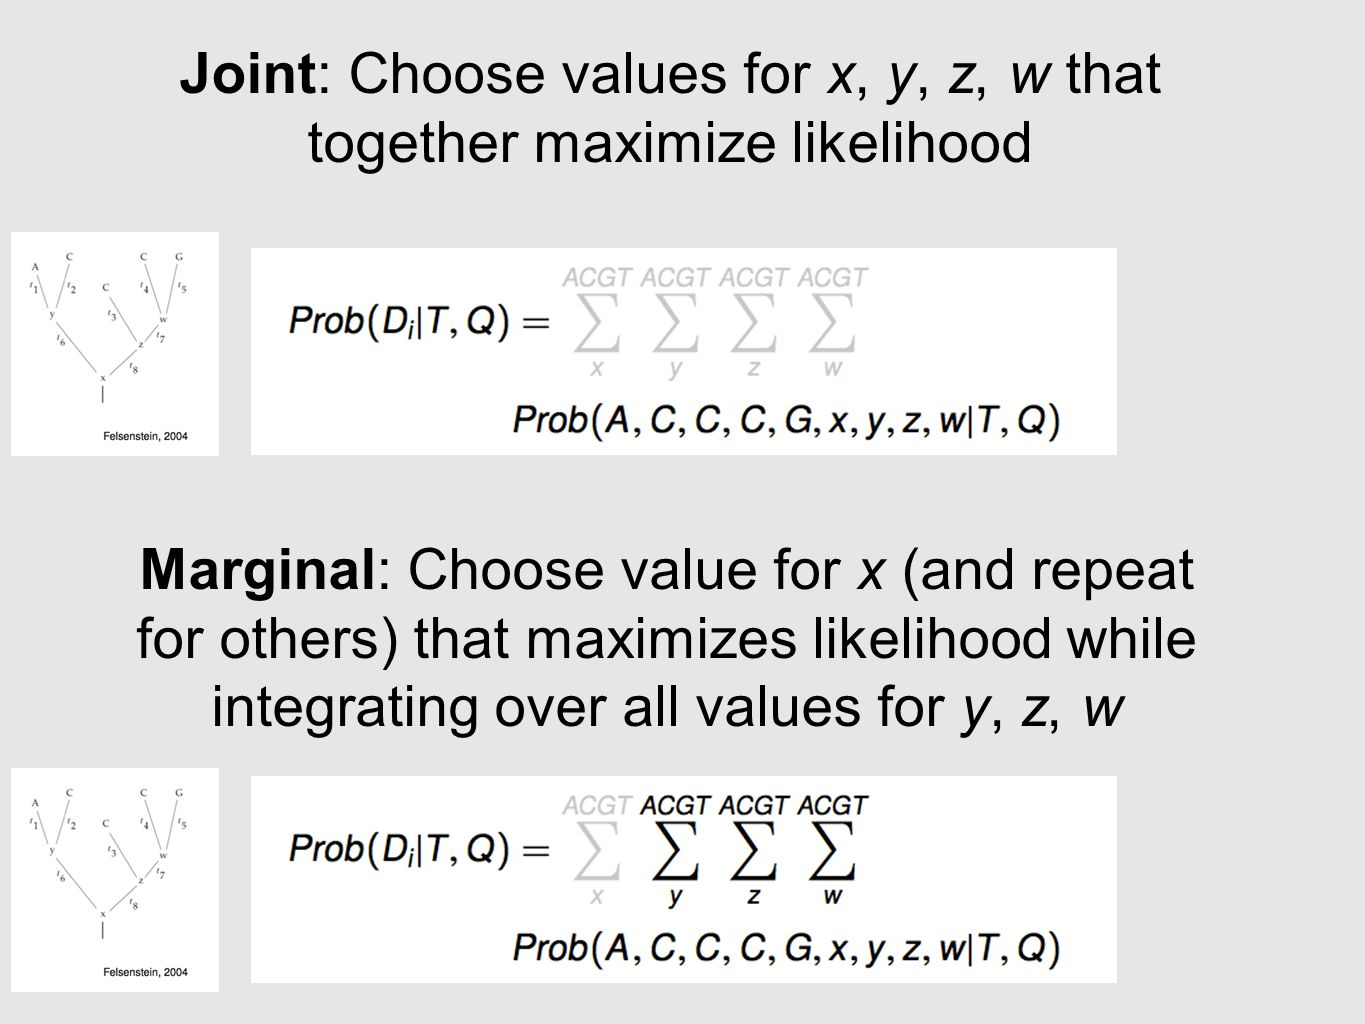 Marginal: Choose value for x (and repeat for others) that maximizes likelihood while integrating over all values for y, z, w